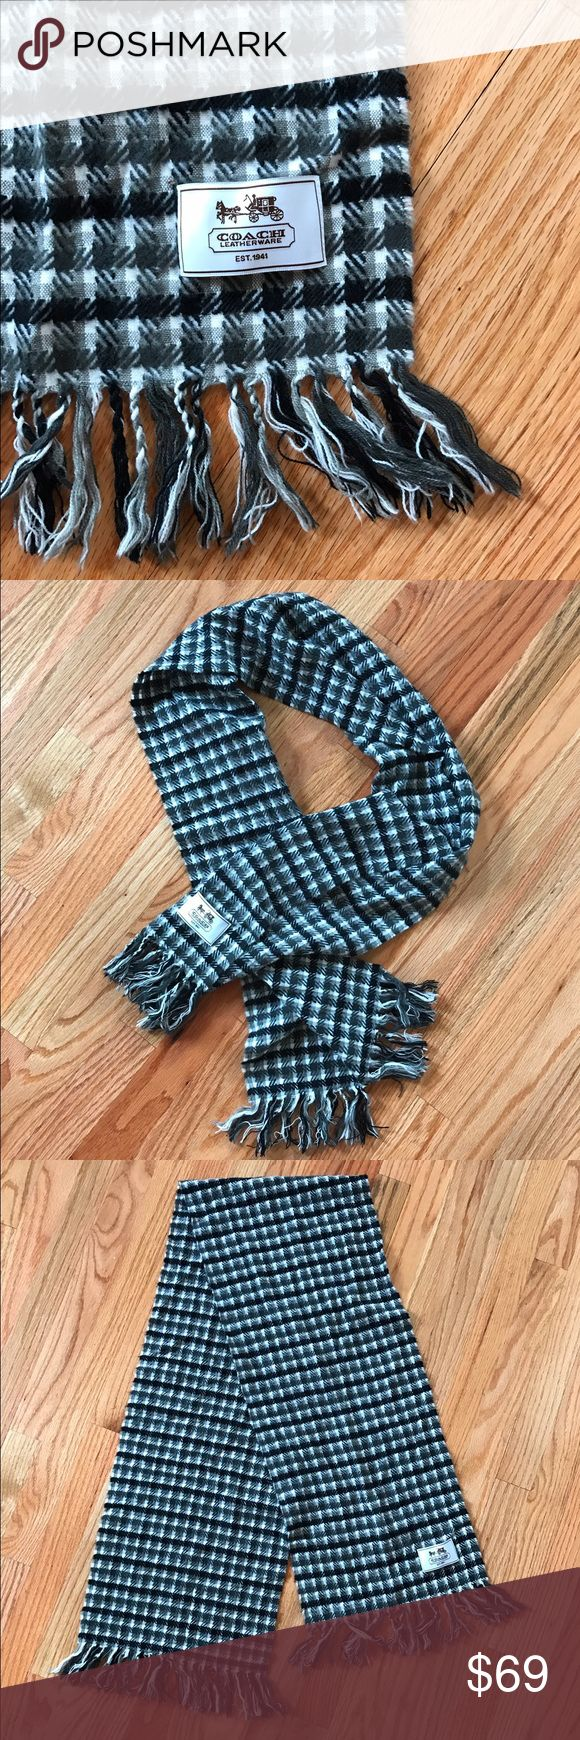 🅾️ Coach Scarf / Beautiful Love this scarf. Wonderful condition. A beautiful, classic staple to have for years. Coach Accessories Scarves & Wraps